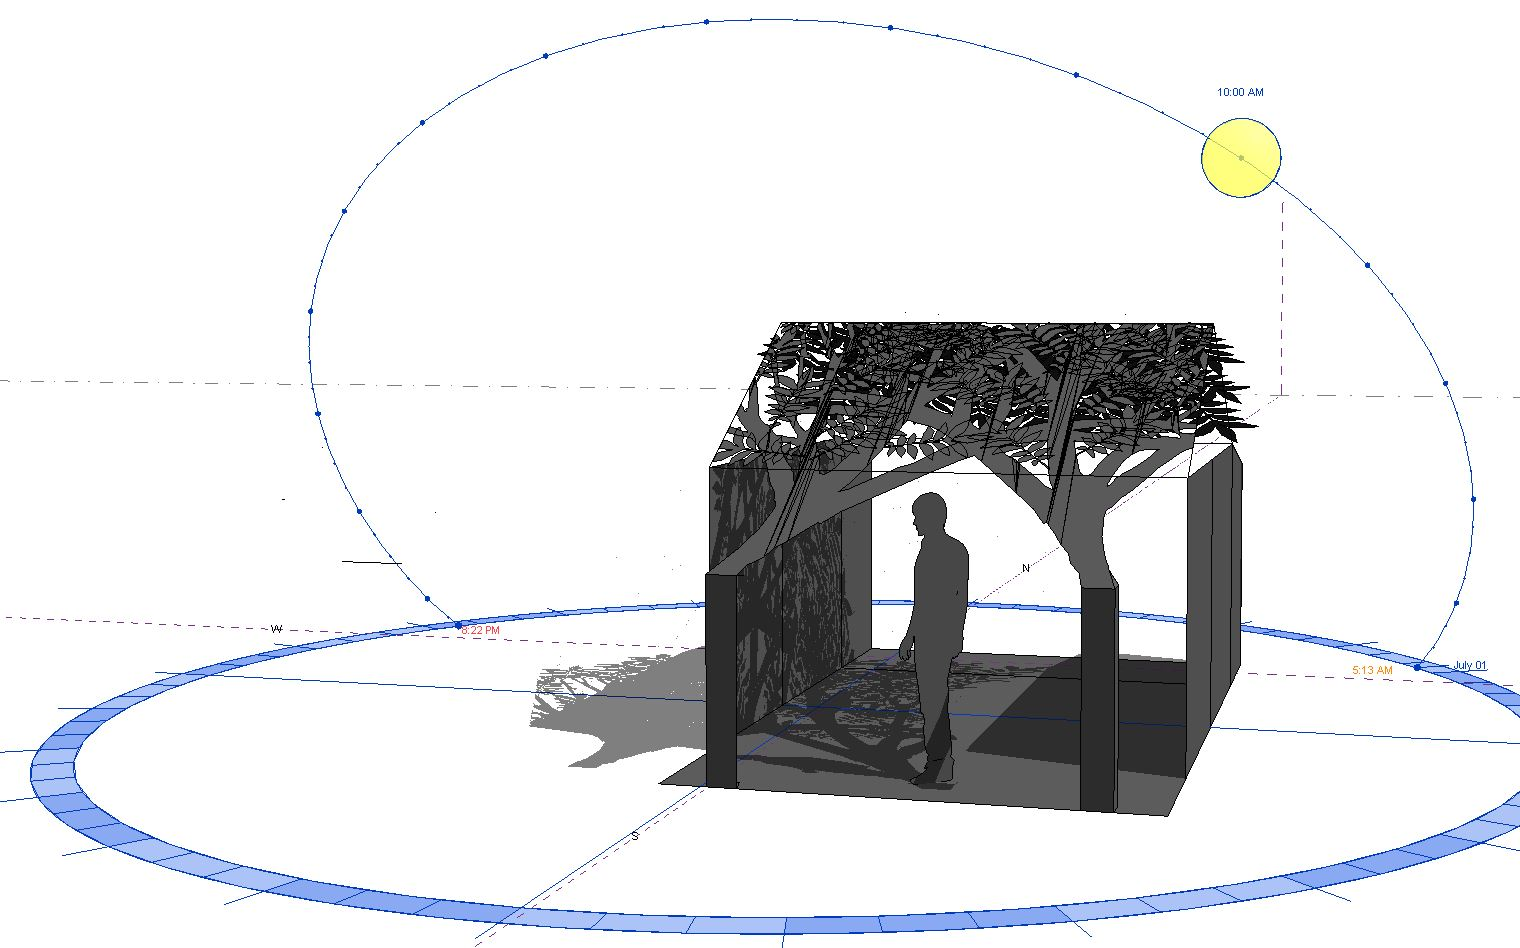 Sun angle study of the Artist's conceptual model